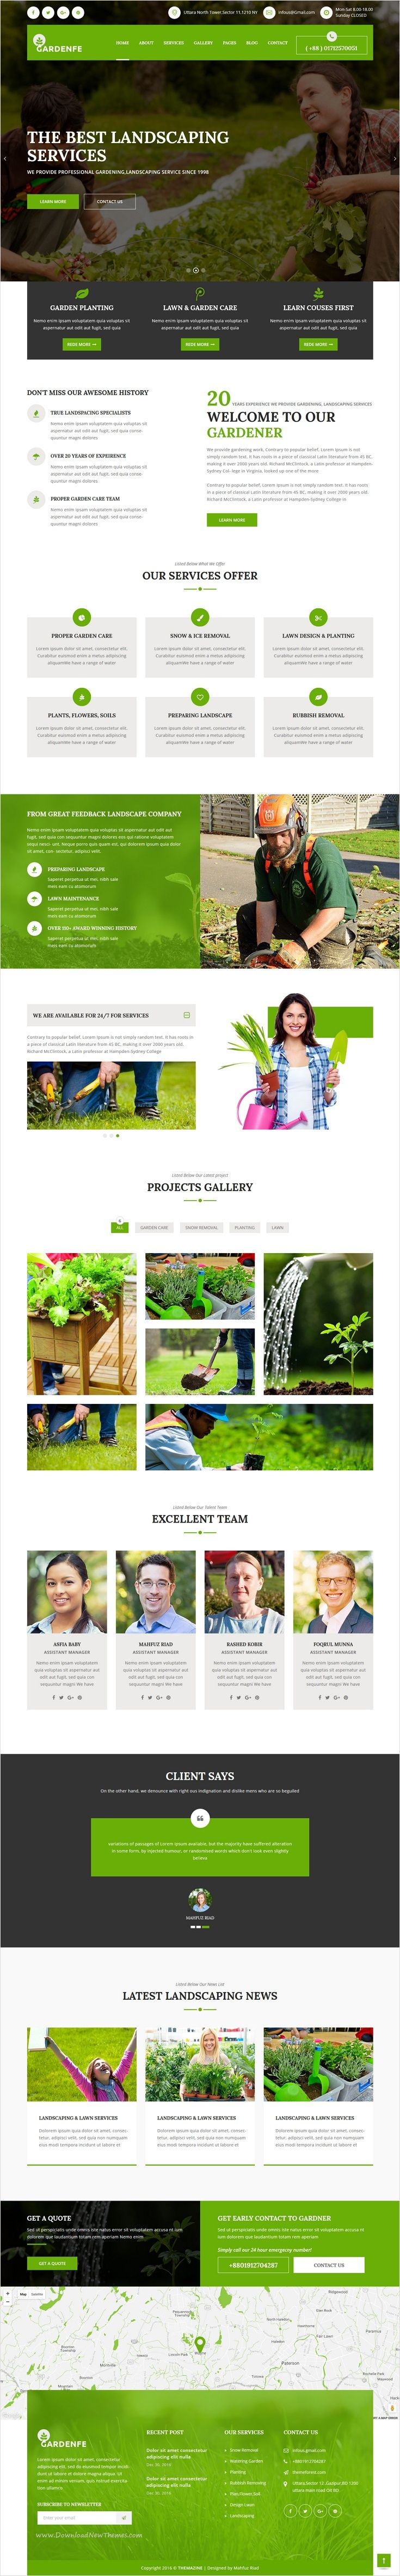 Gardenfe is a beautifully design 2 in 1 Bootstrap #HTML #theme for Gardening, #Landscaping Companies, #Lawn Services, Agriculture company website download now➩ https://themeforest.net/item/gardenfe-gardening-and-landscaping-html-template/18407462?ref=Datasata